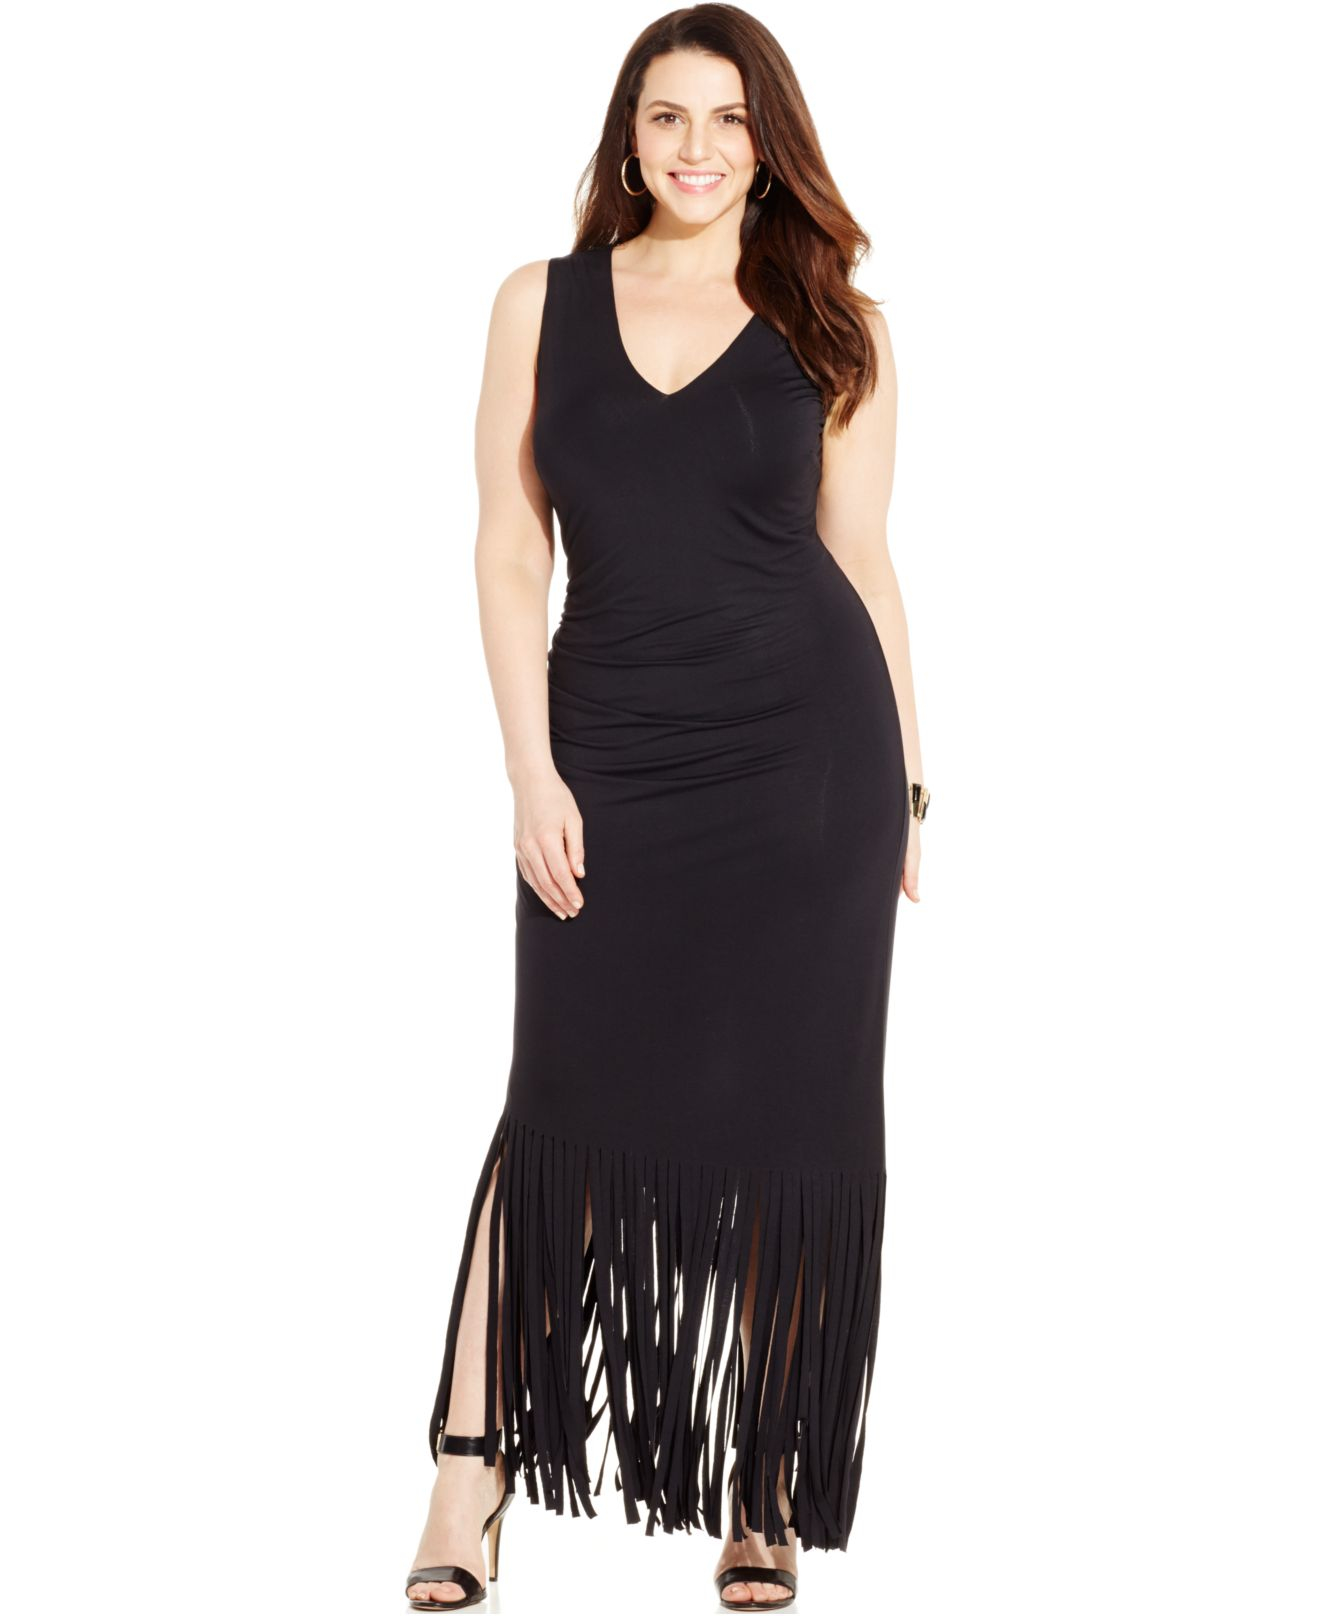 INC International Concepts Plus Size Fringed Maxi Dress in Black - Lyst